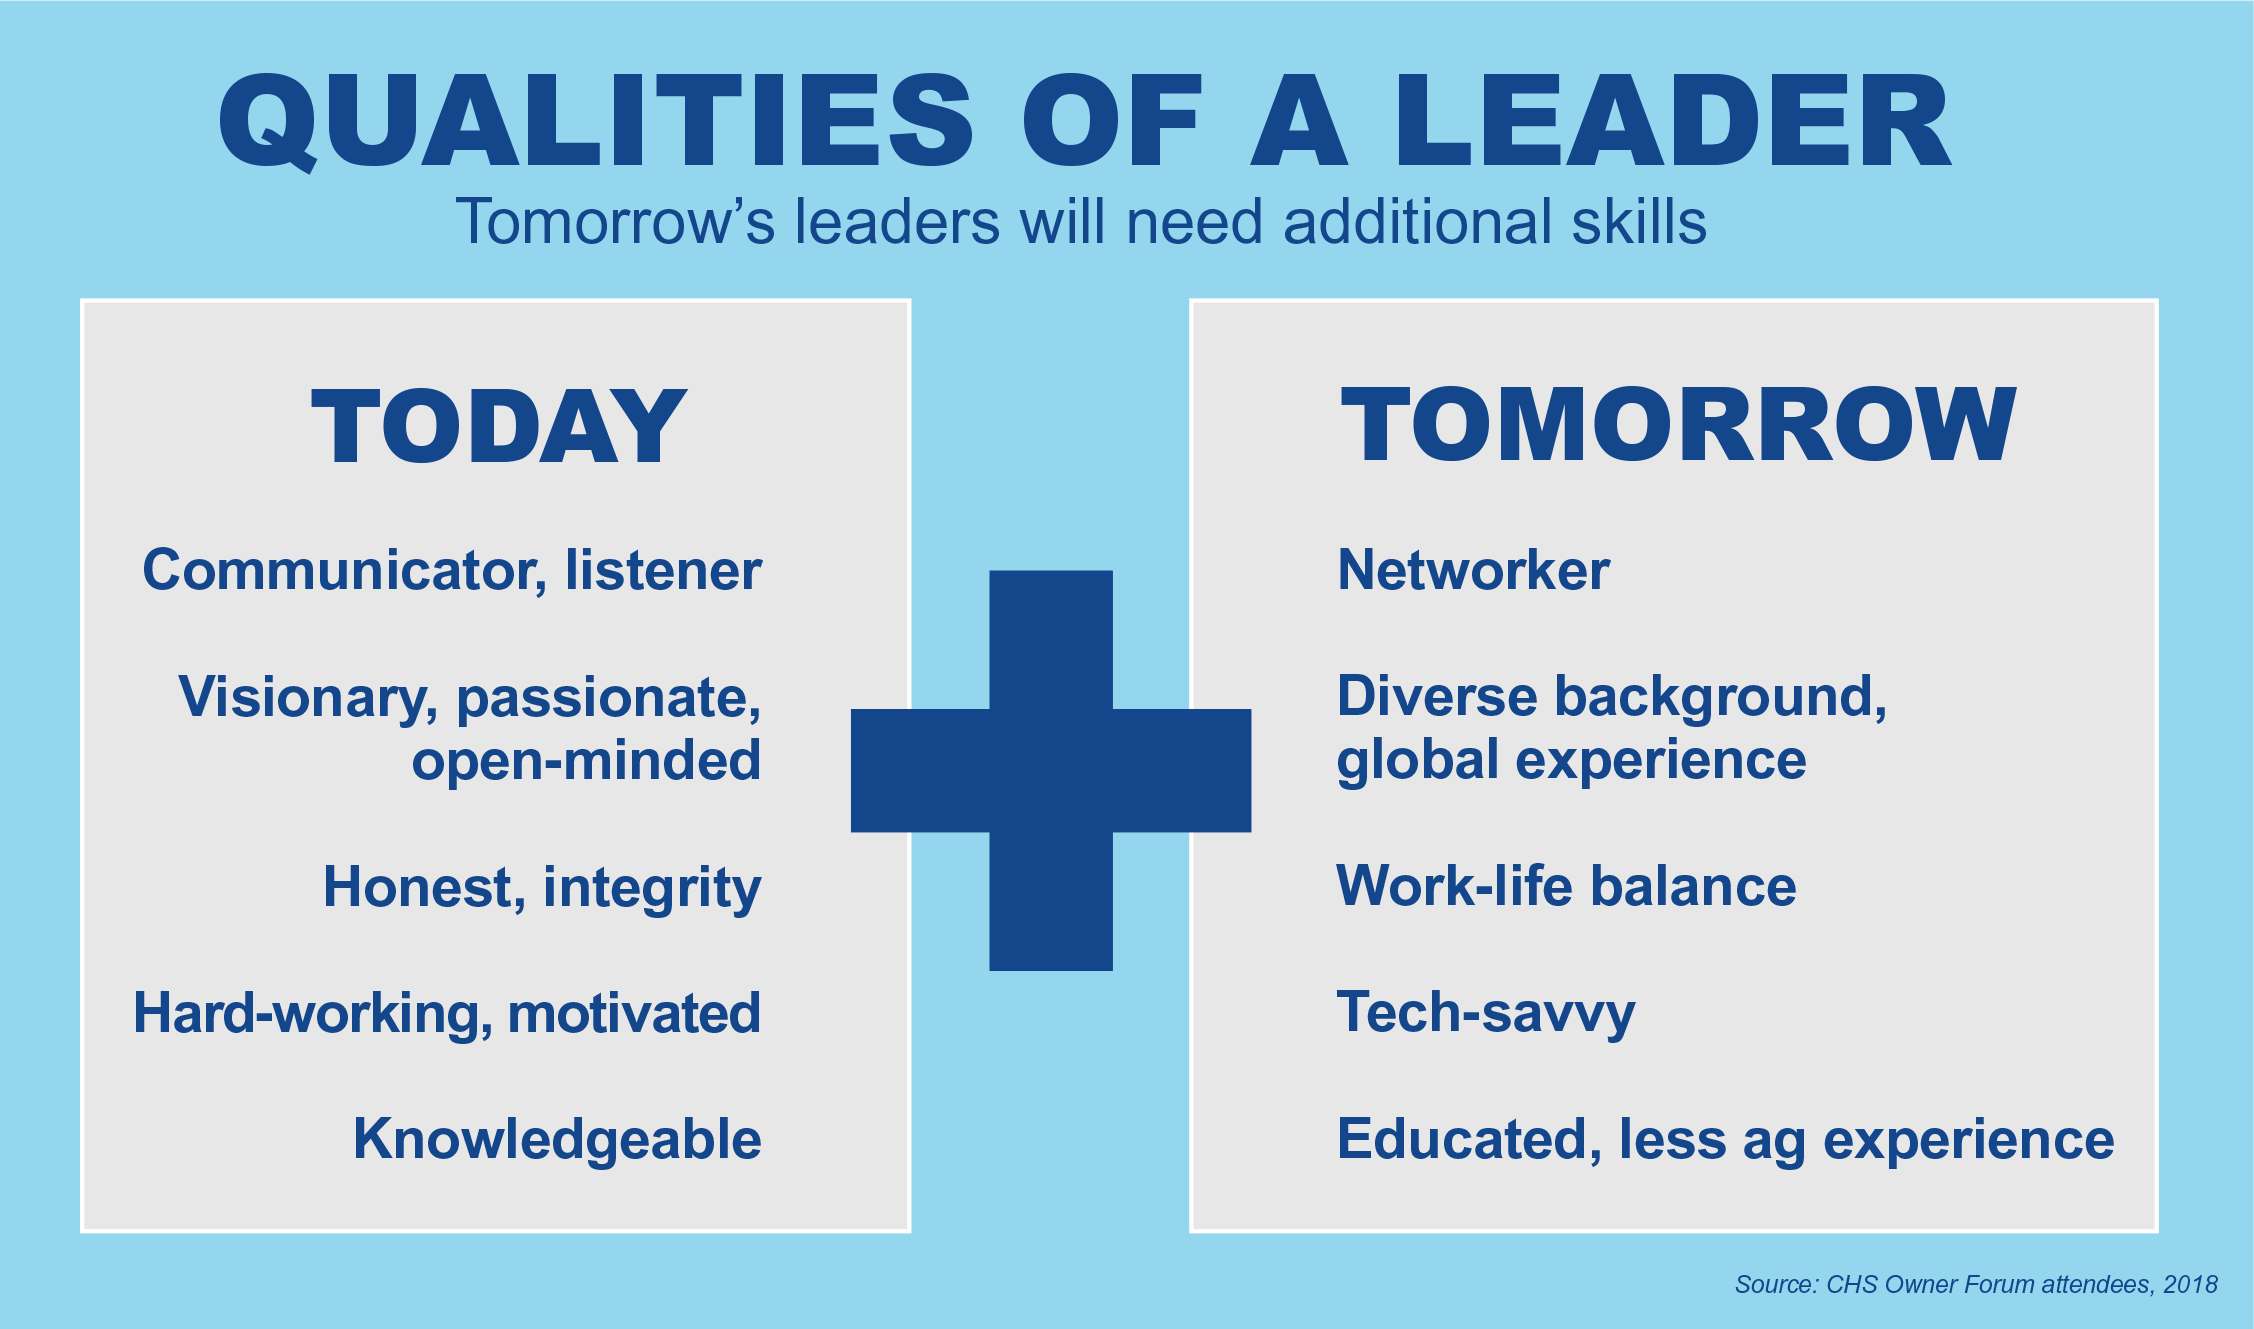 Today's leaders vs. tomorrow's leaders